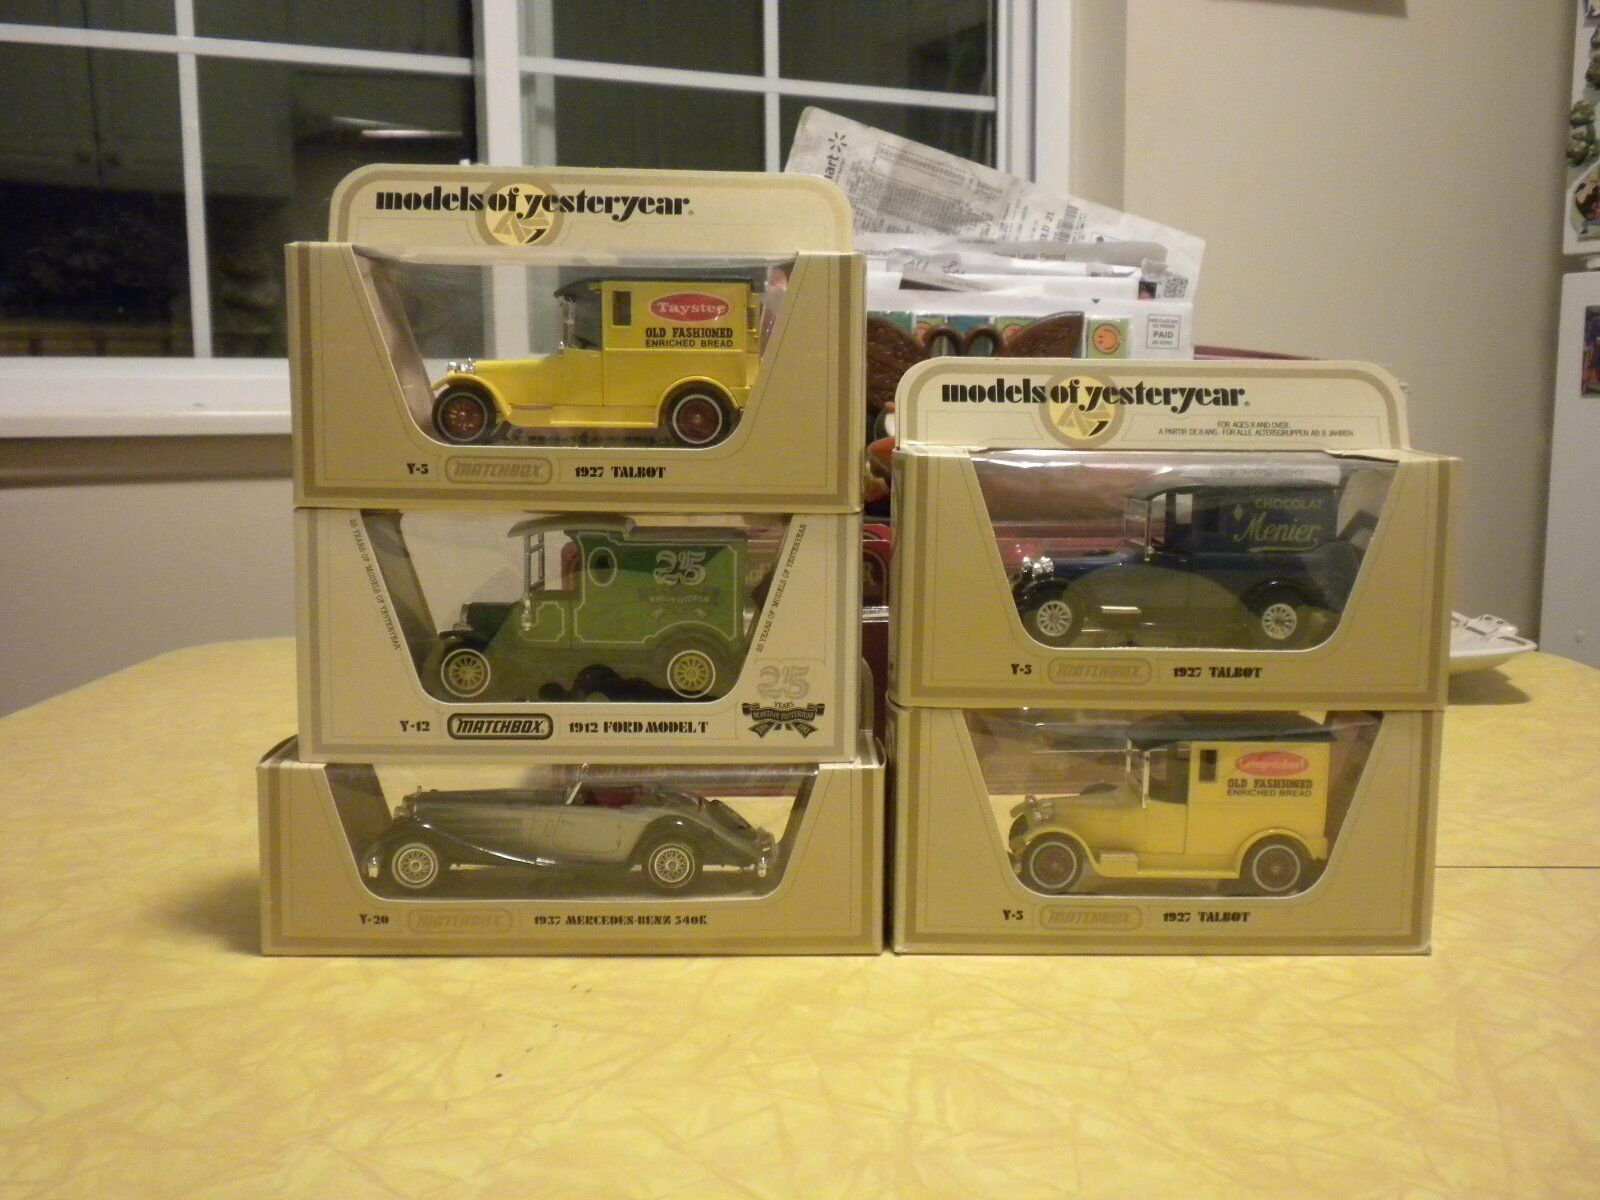 BRAND NEW (NOS) MODELS OF YESTERYEAR LOT LOT LOT OF (9) VEHICLES MINT IN THE BOXES ddec0d